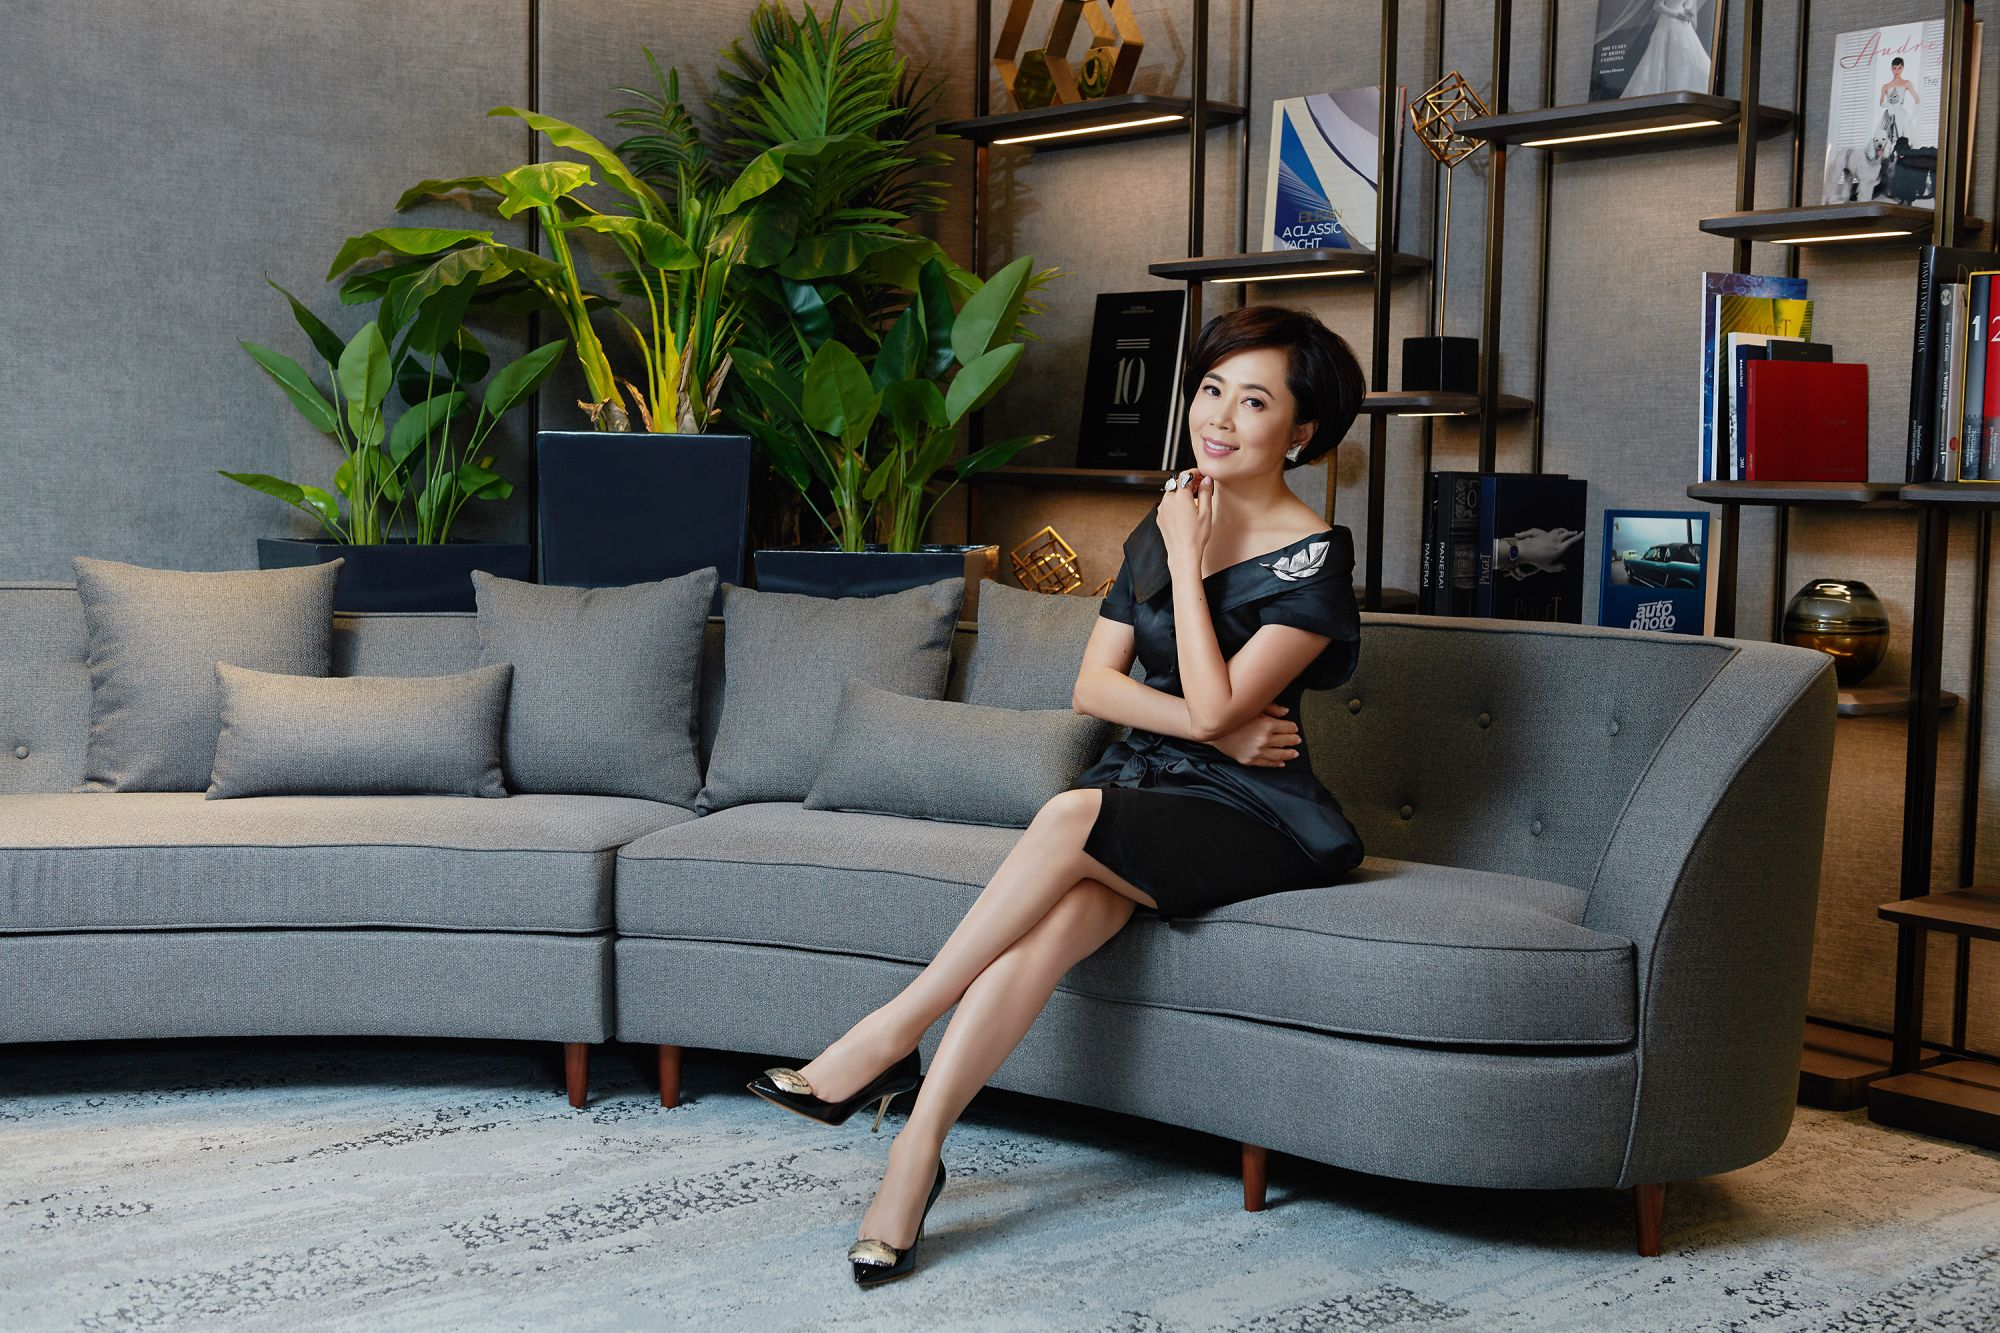 The Next Step With Cindy Yeung